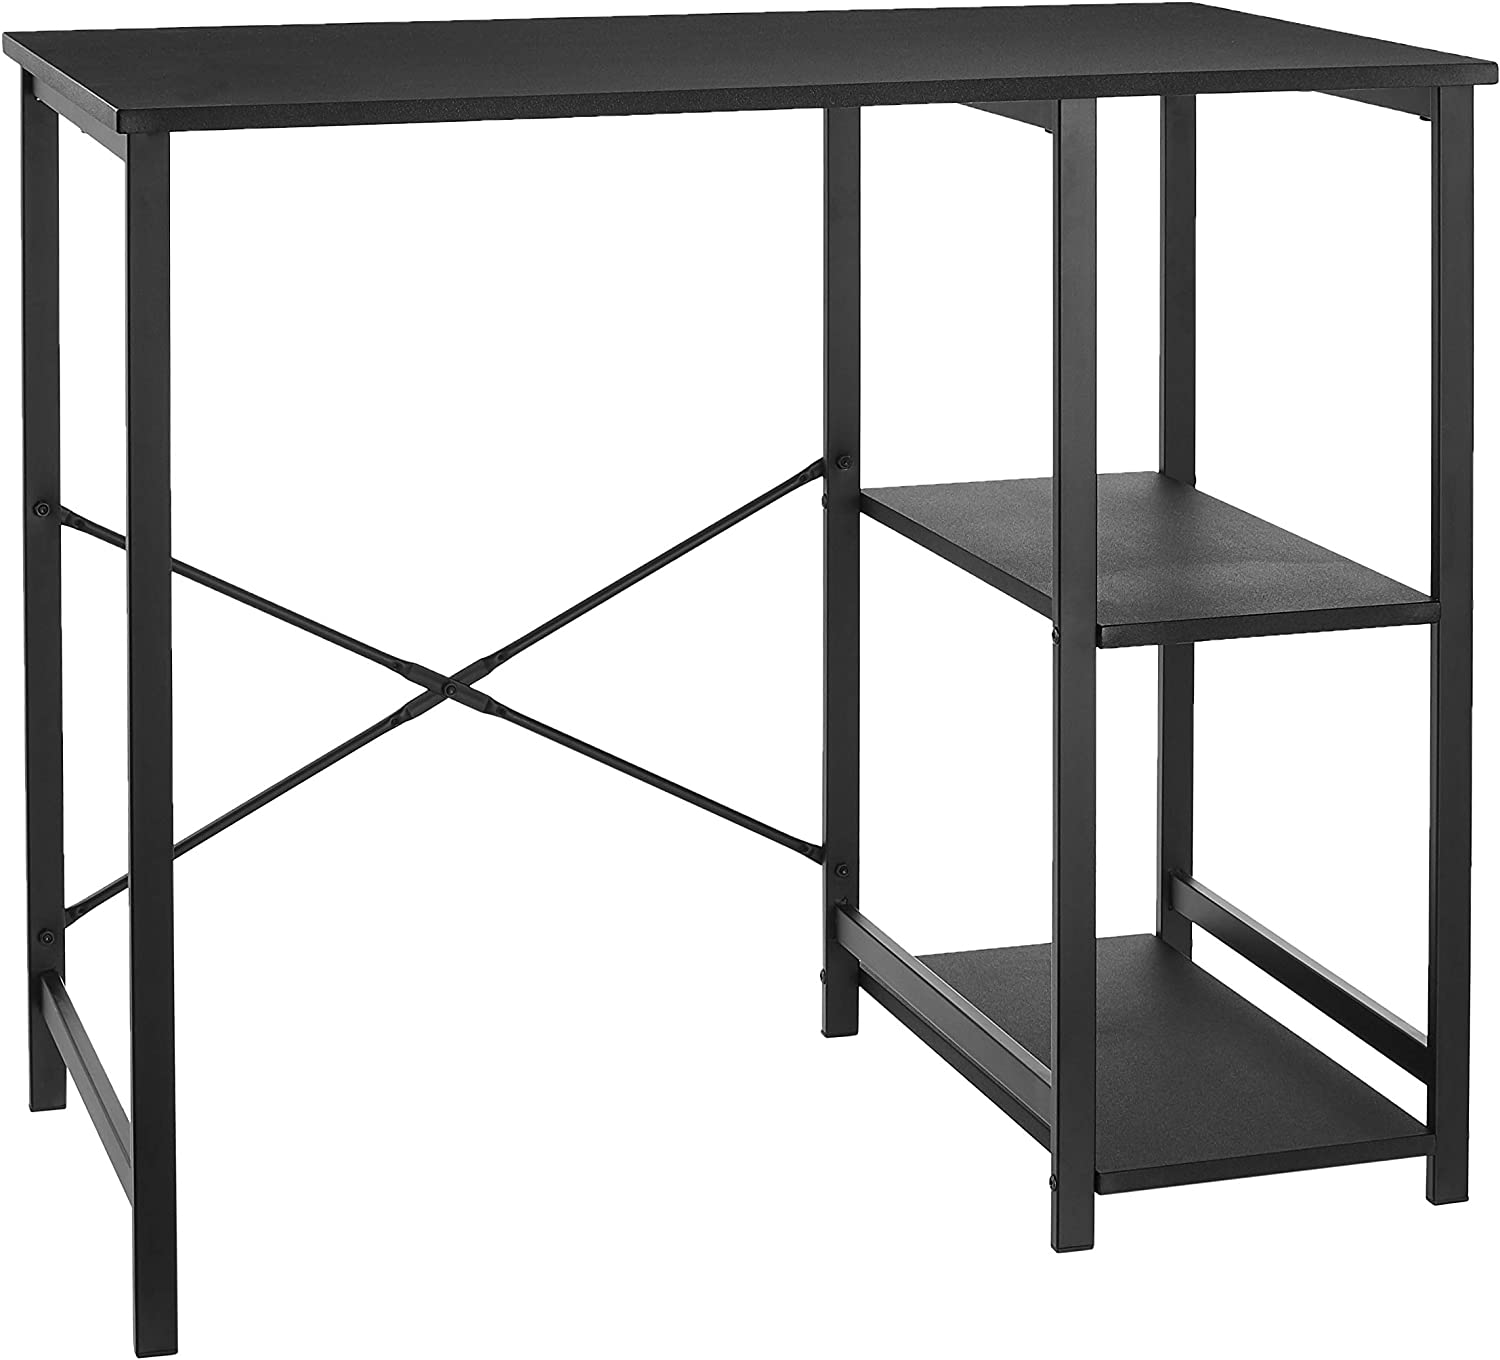 AmazonBasics Classic Computer Desk With Shelves - Black